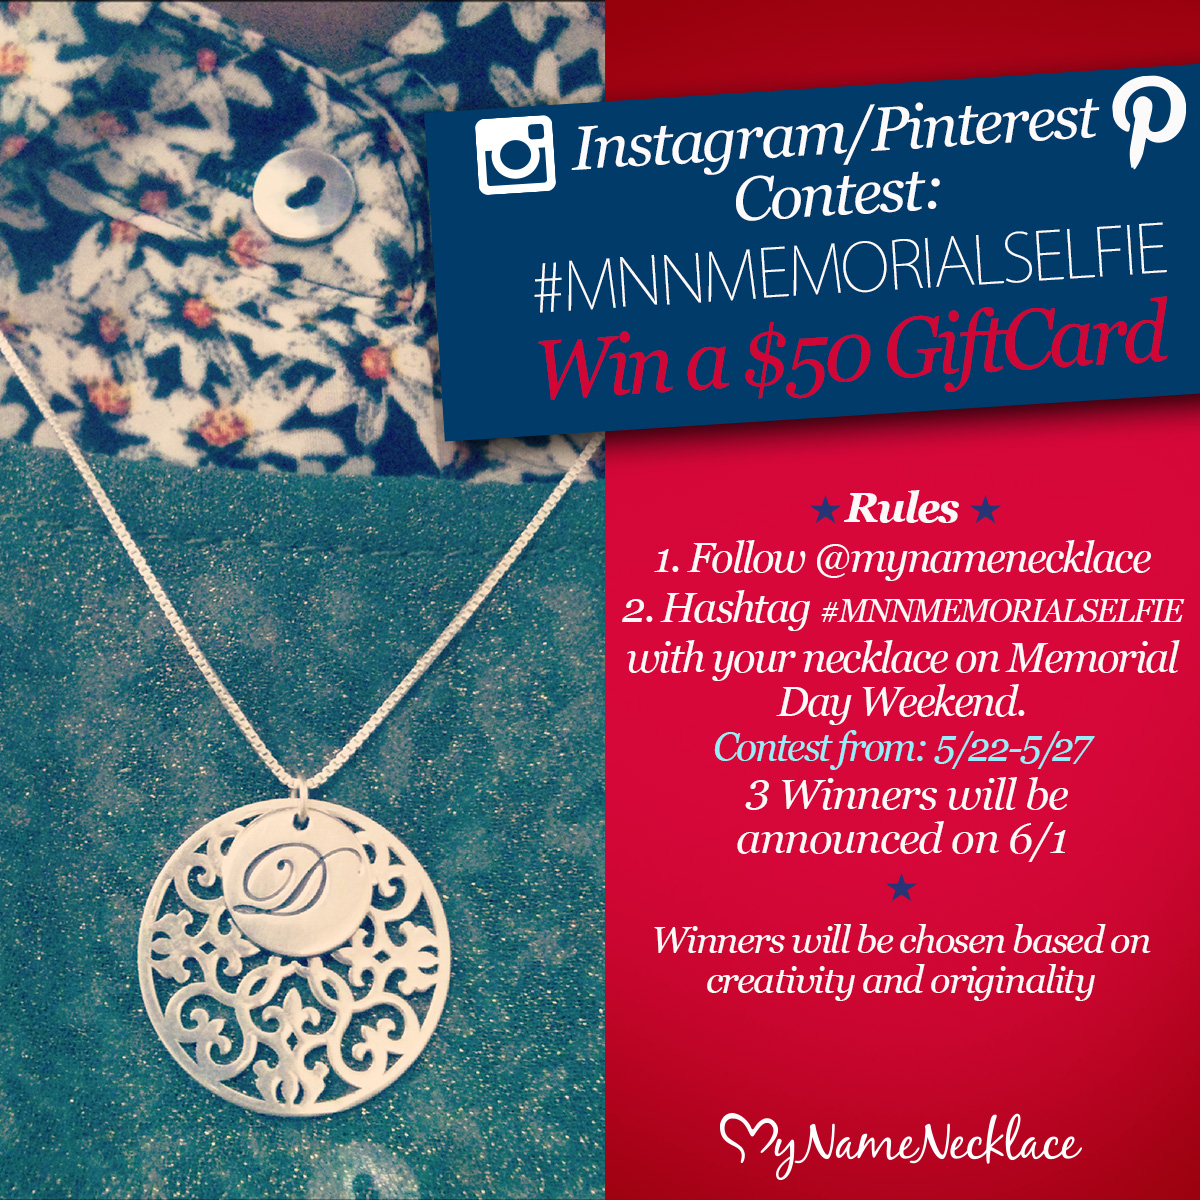 Instagram/Pinterest Memorial Day Contest